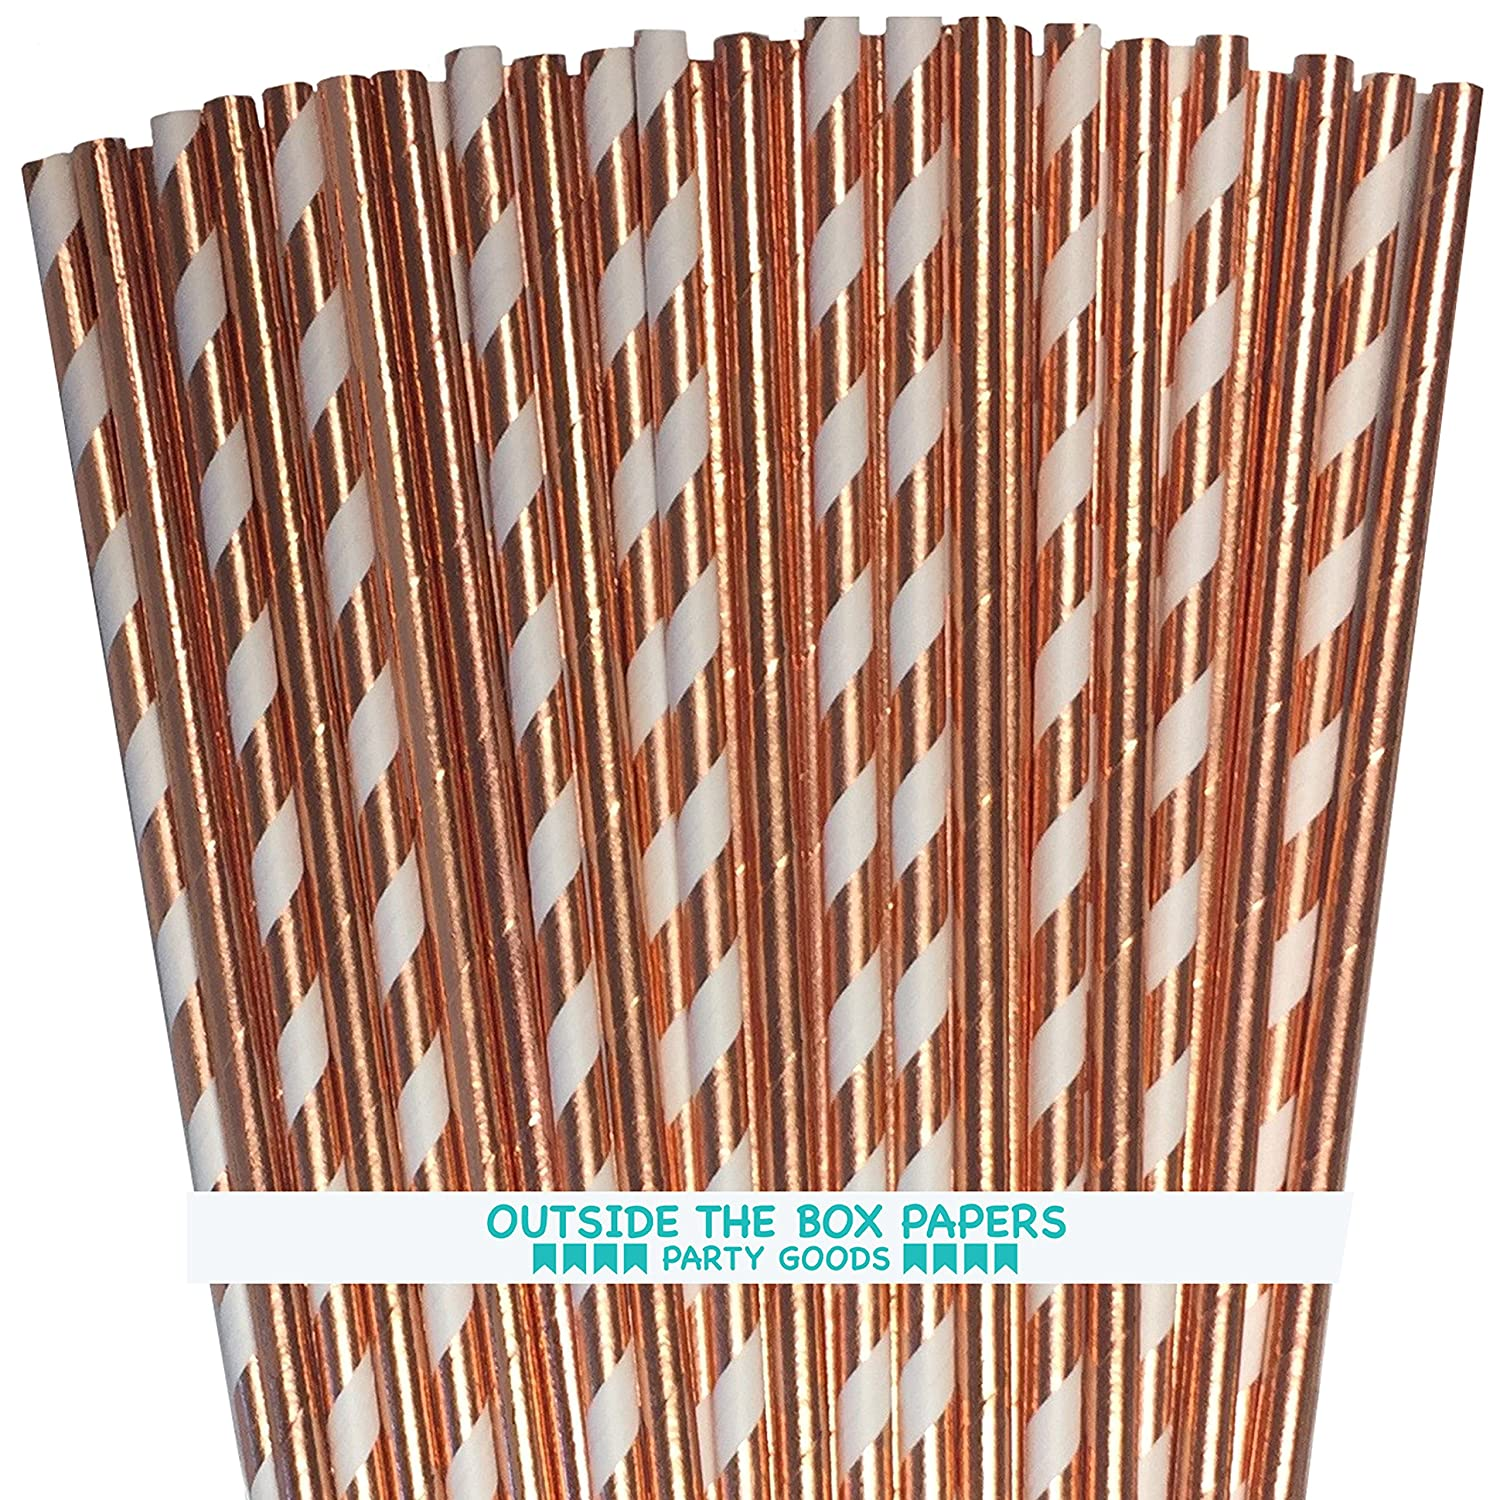 Outside the Box Papers Rose Gold Solid and Stripe Foil Paper Straws 7.75 Inches 100 Pack Rose Gold, White